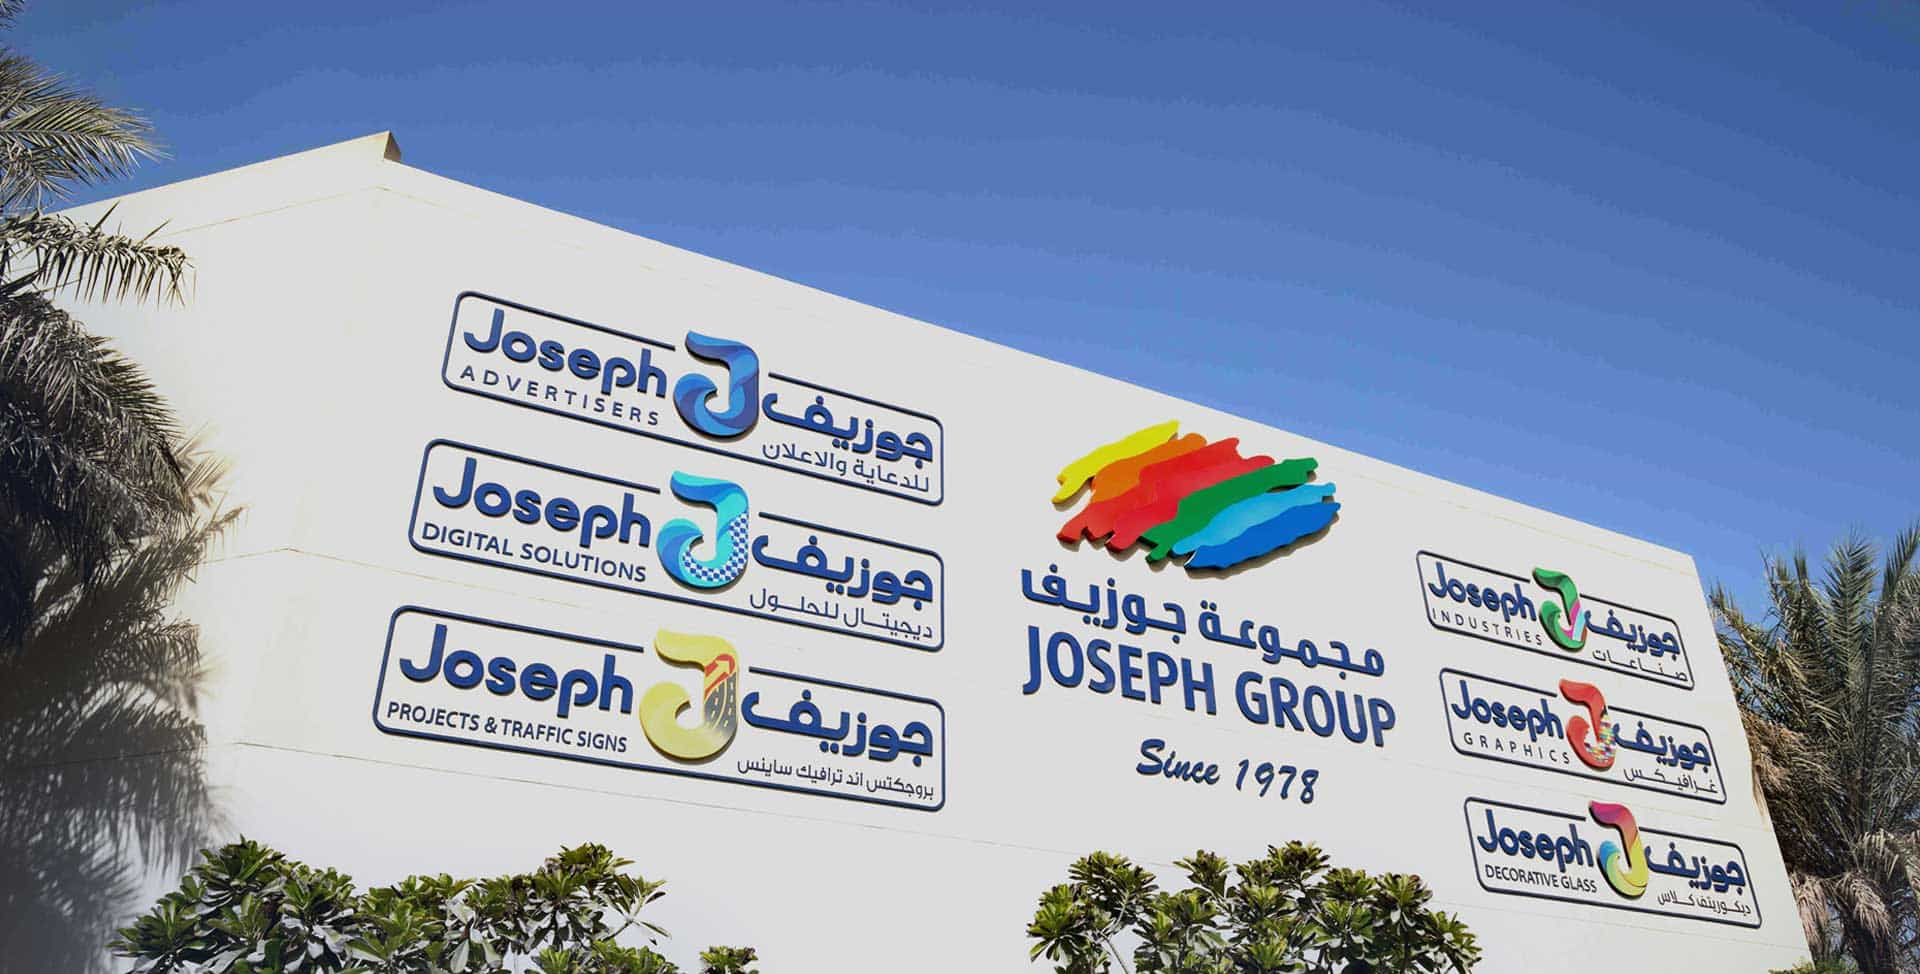 Joseph Group Logo